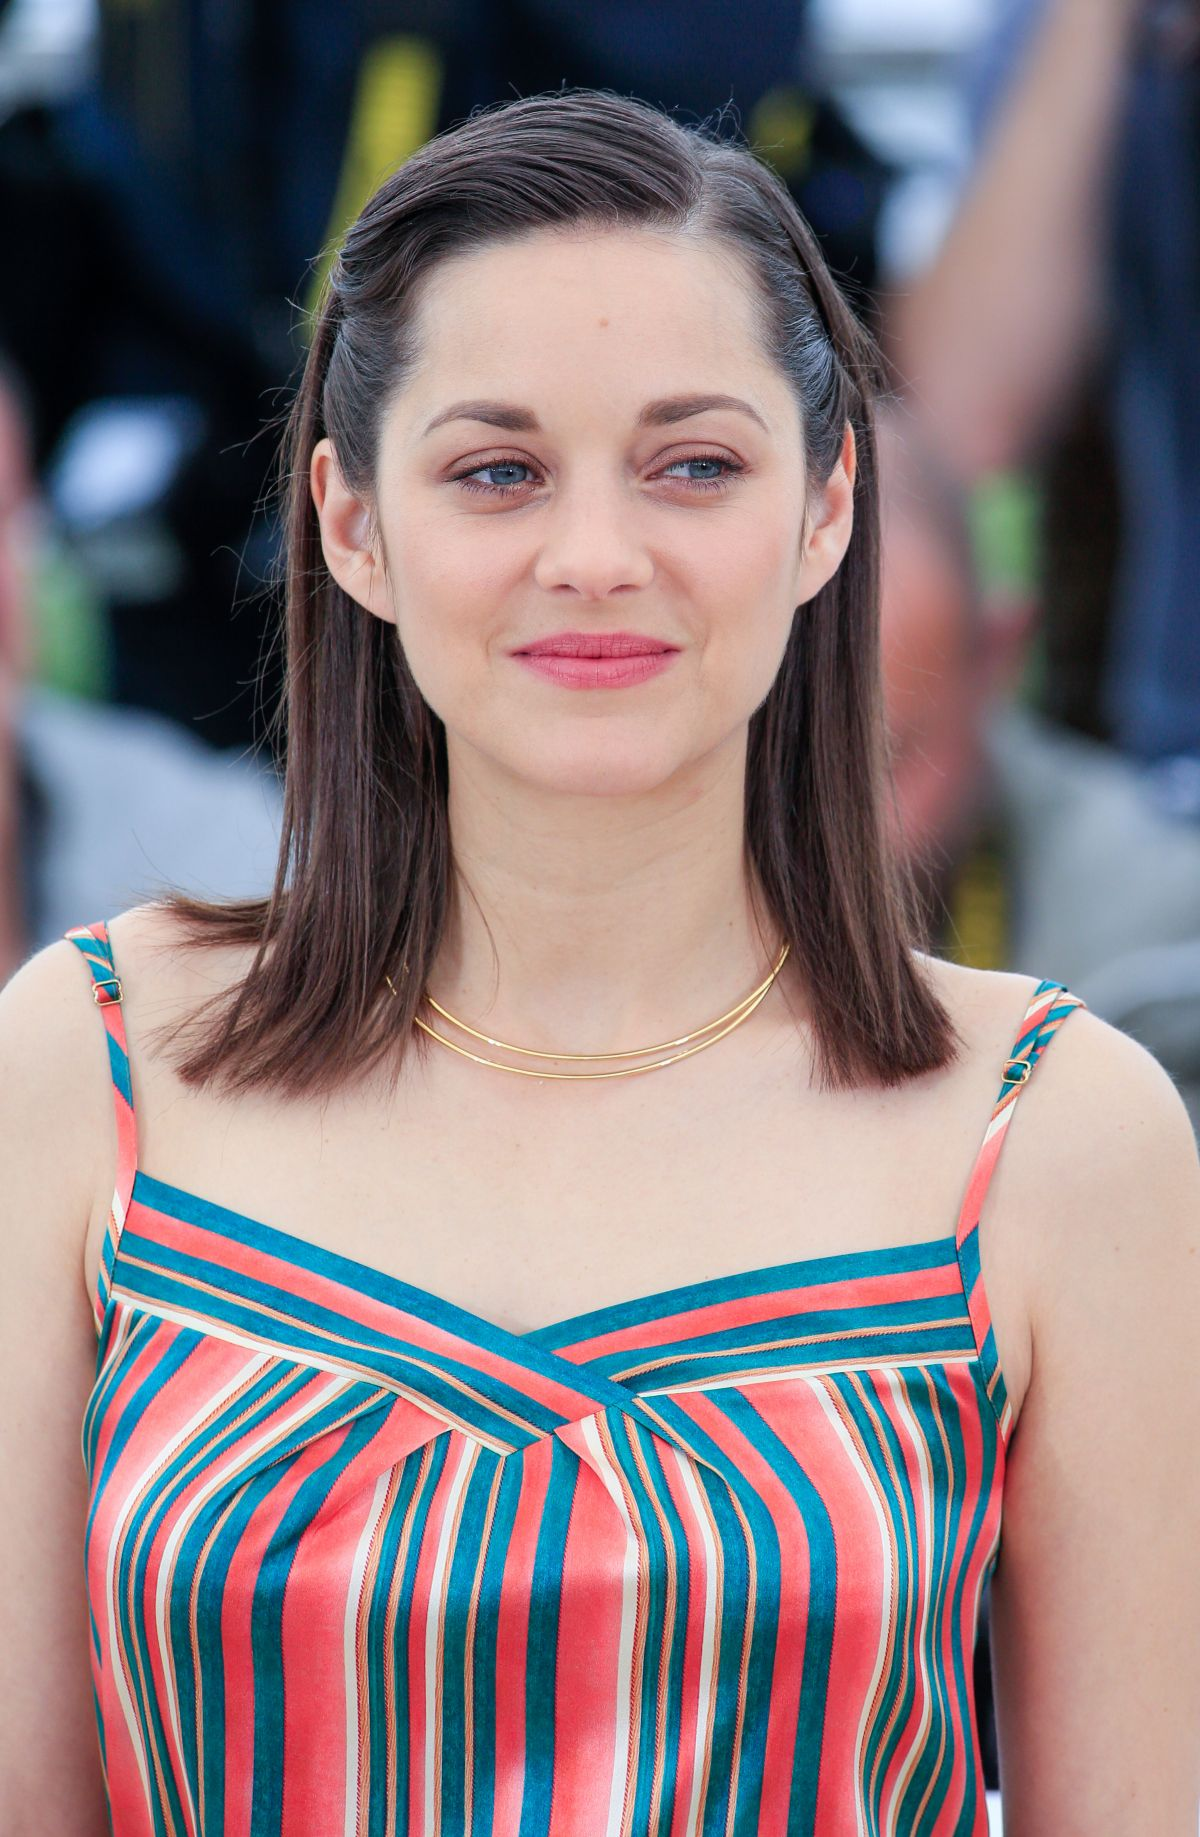 marion-cotillard-at-macneth-photocall-at-cannes-film-festival_24.jpg